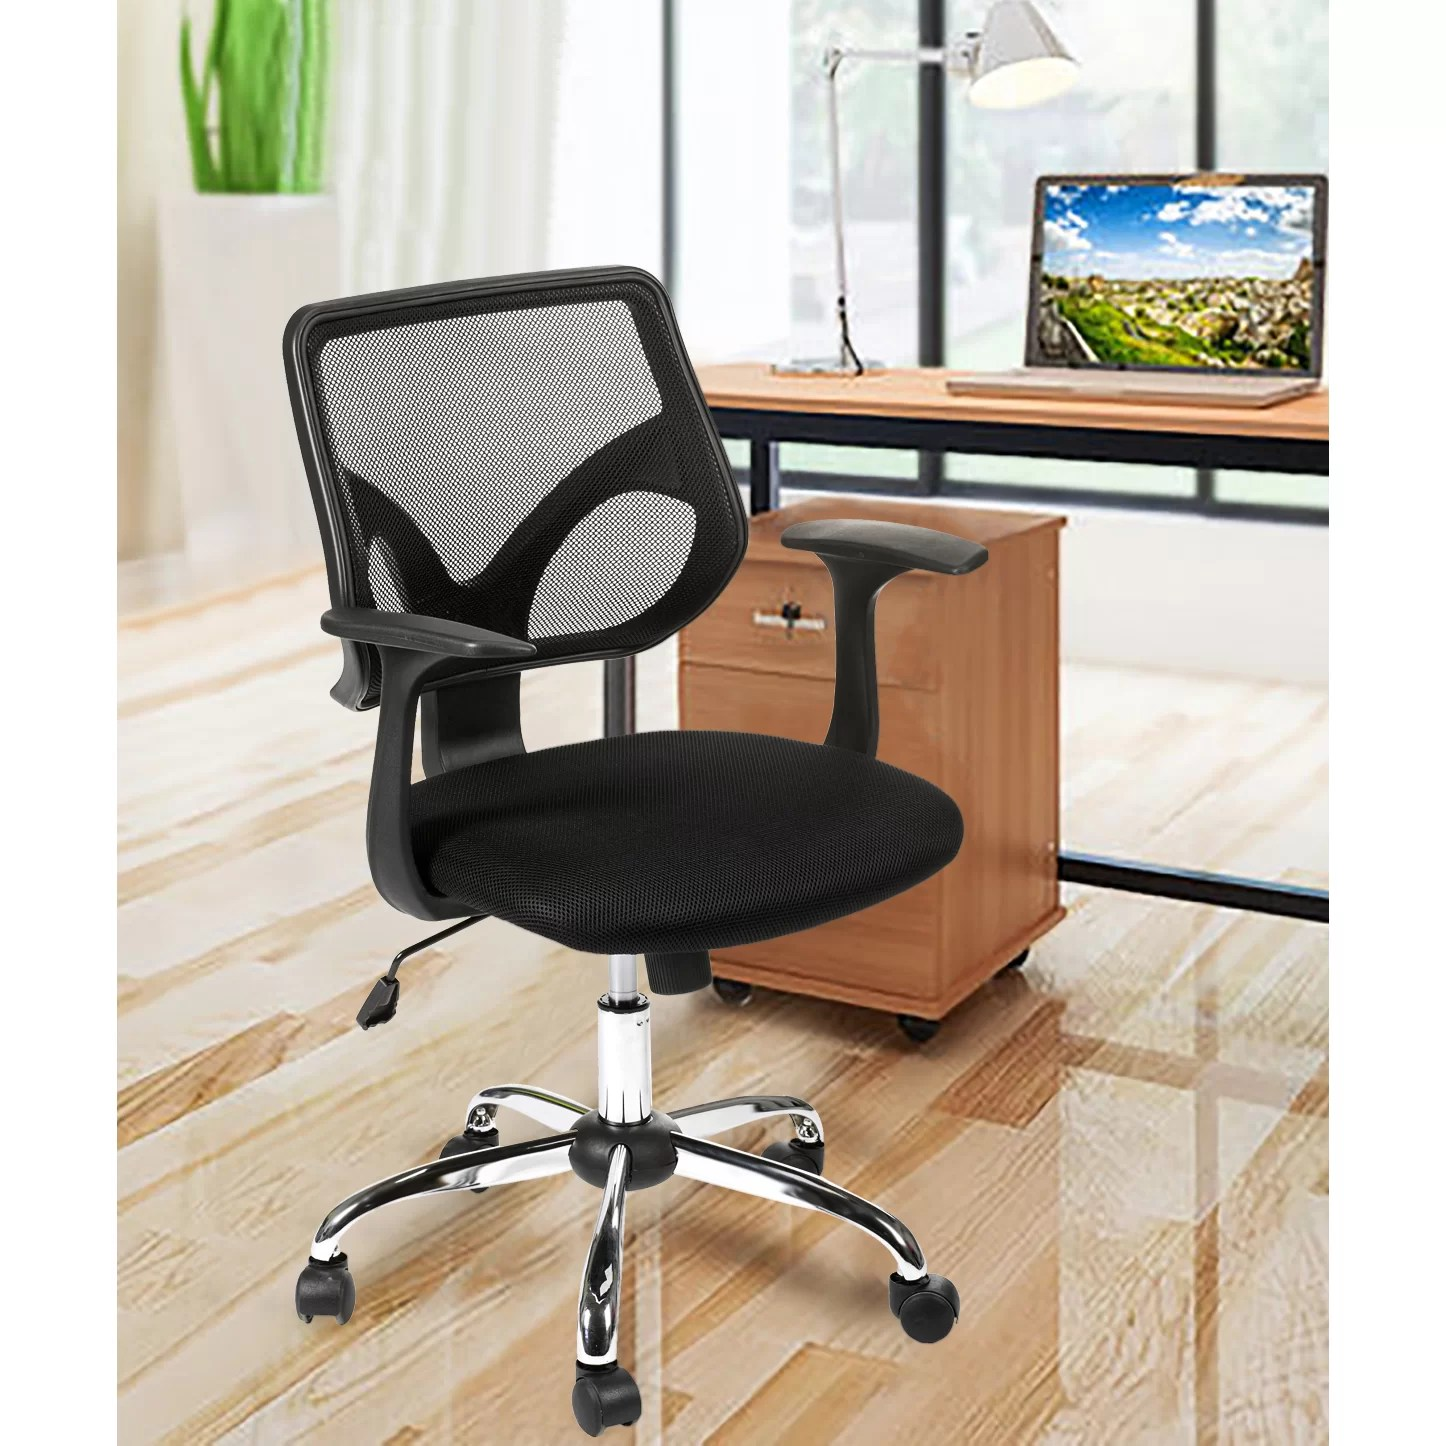 Office Chair With Arms Merax Mesh Office Task Chair With Arms And Reviews Wayfair